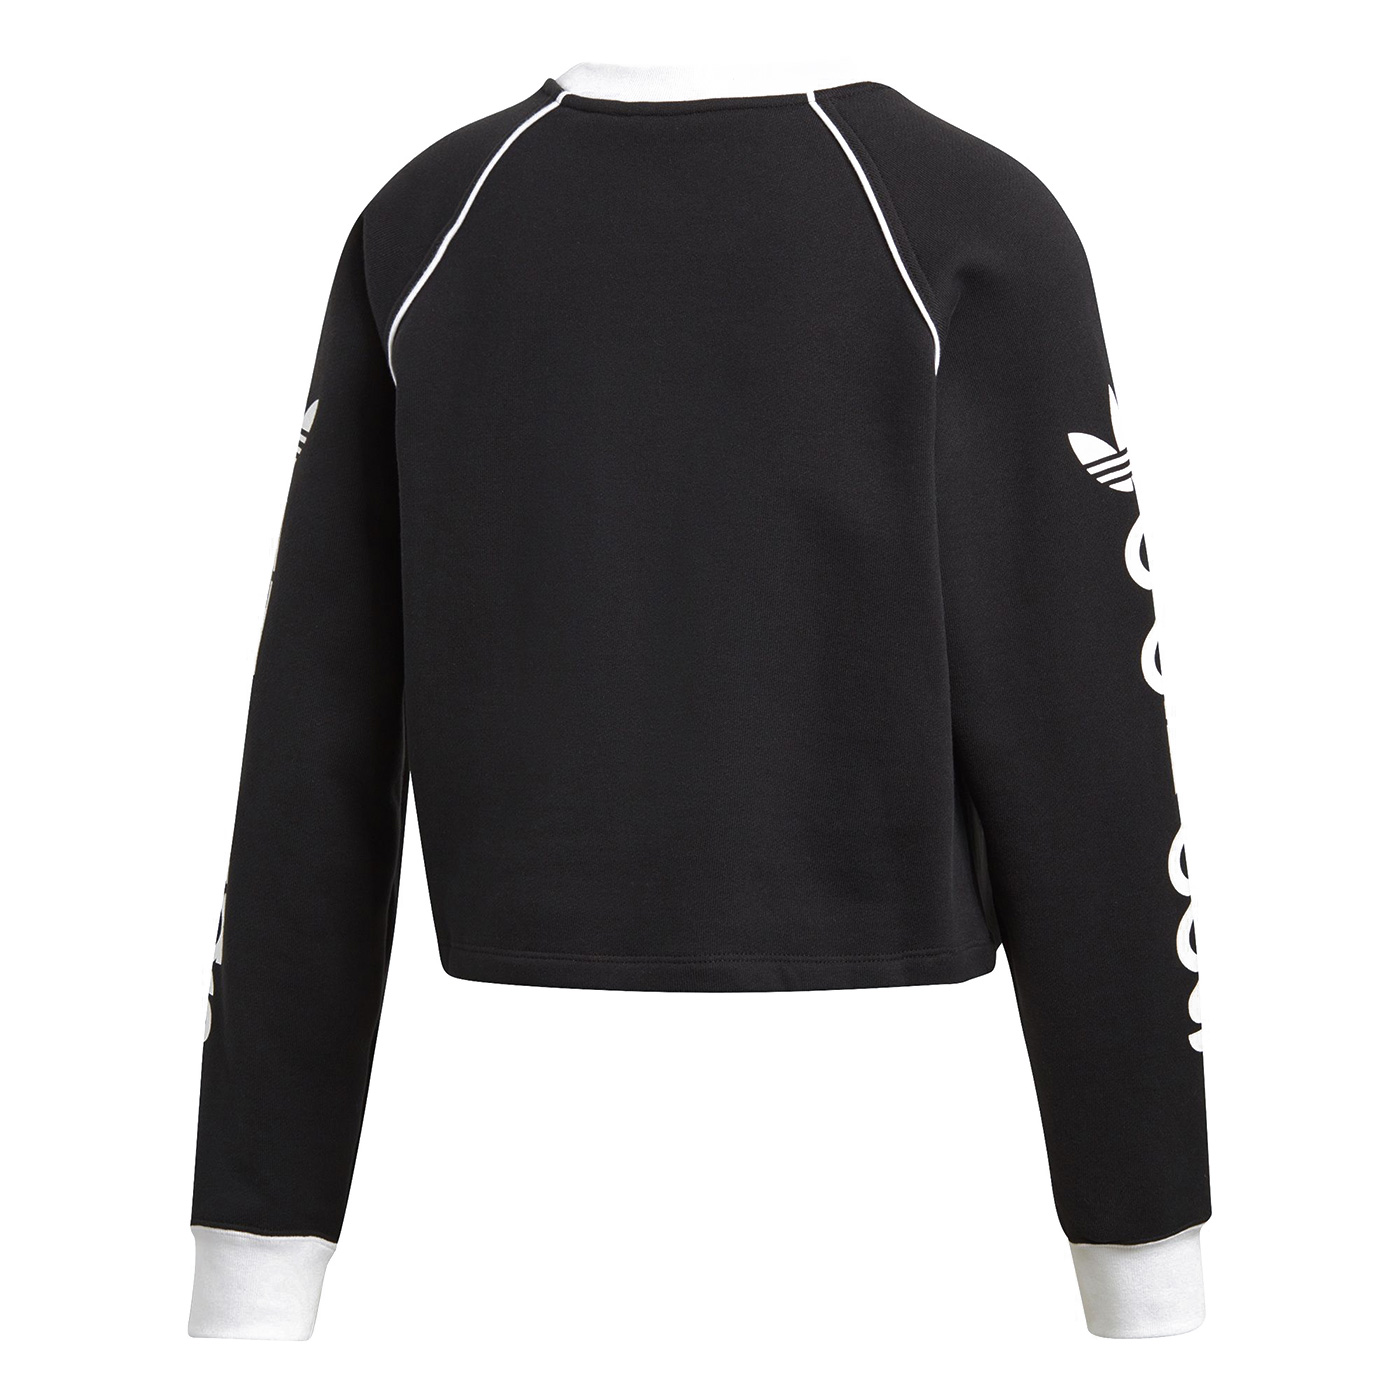 Adidas Sweatershirt Long Sleeve Womens DH4714 Crewneck Trefoil Cropped Sweatershirt